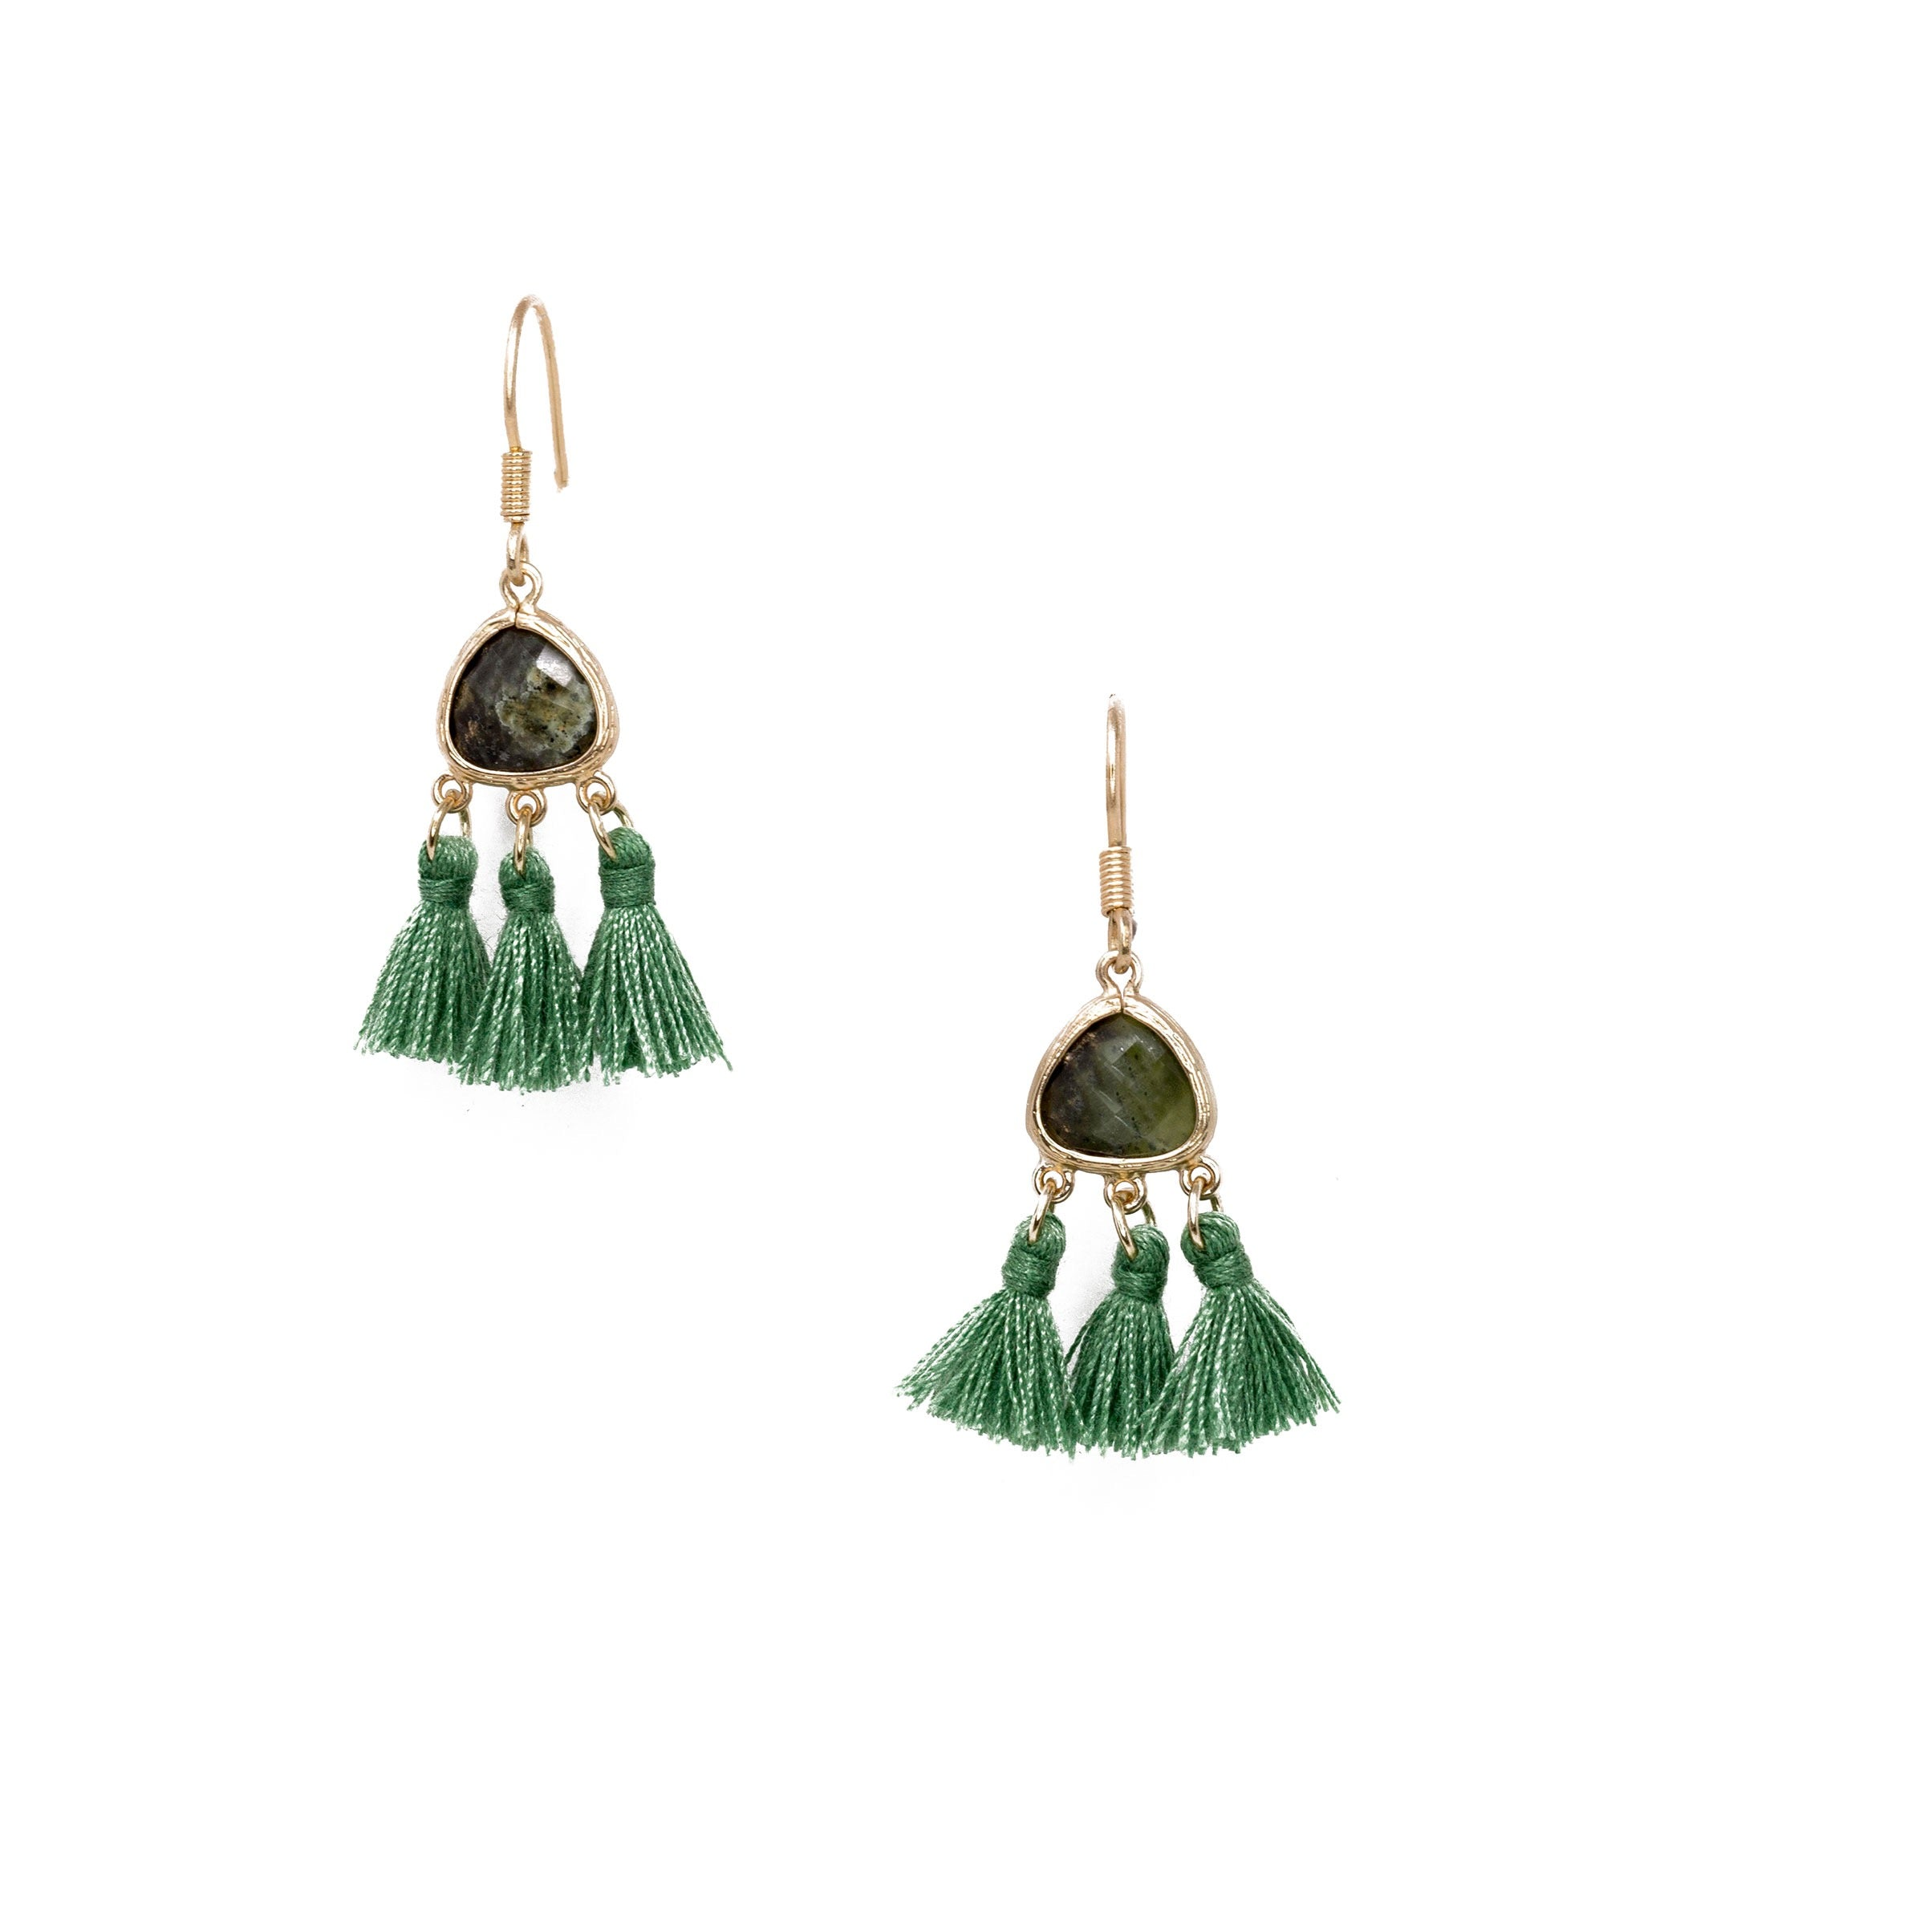 green mini tassel earrings with stone